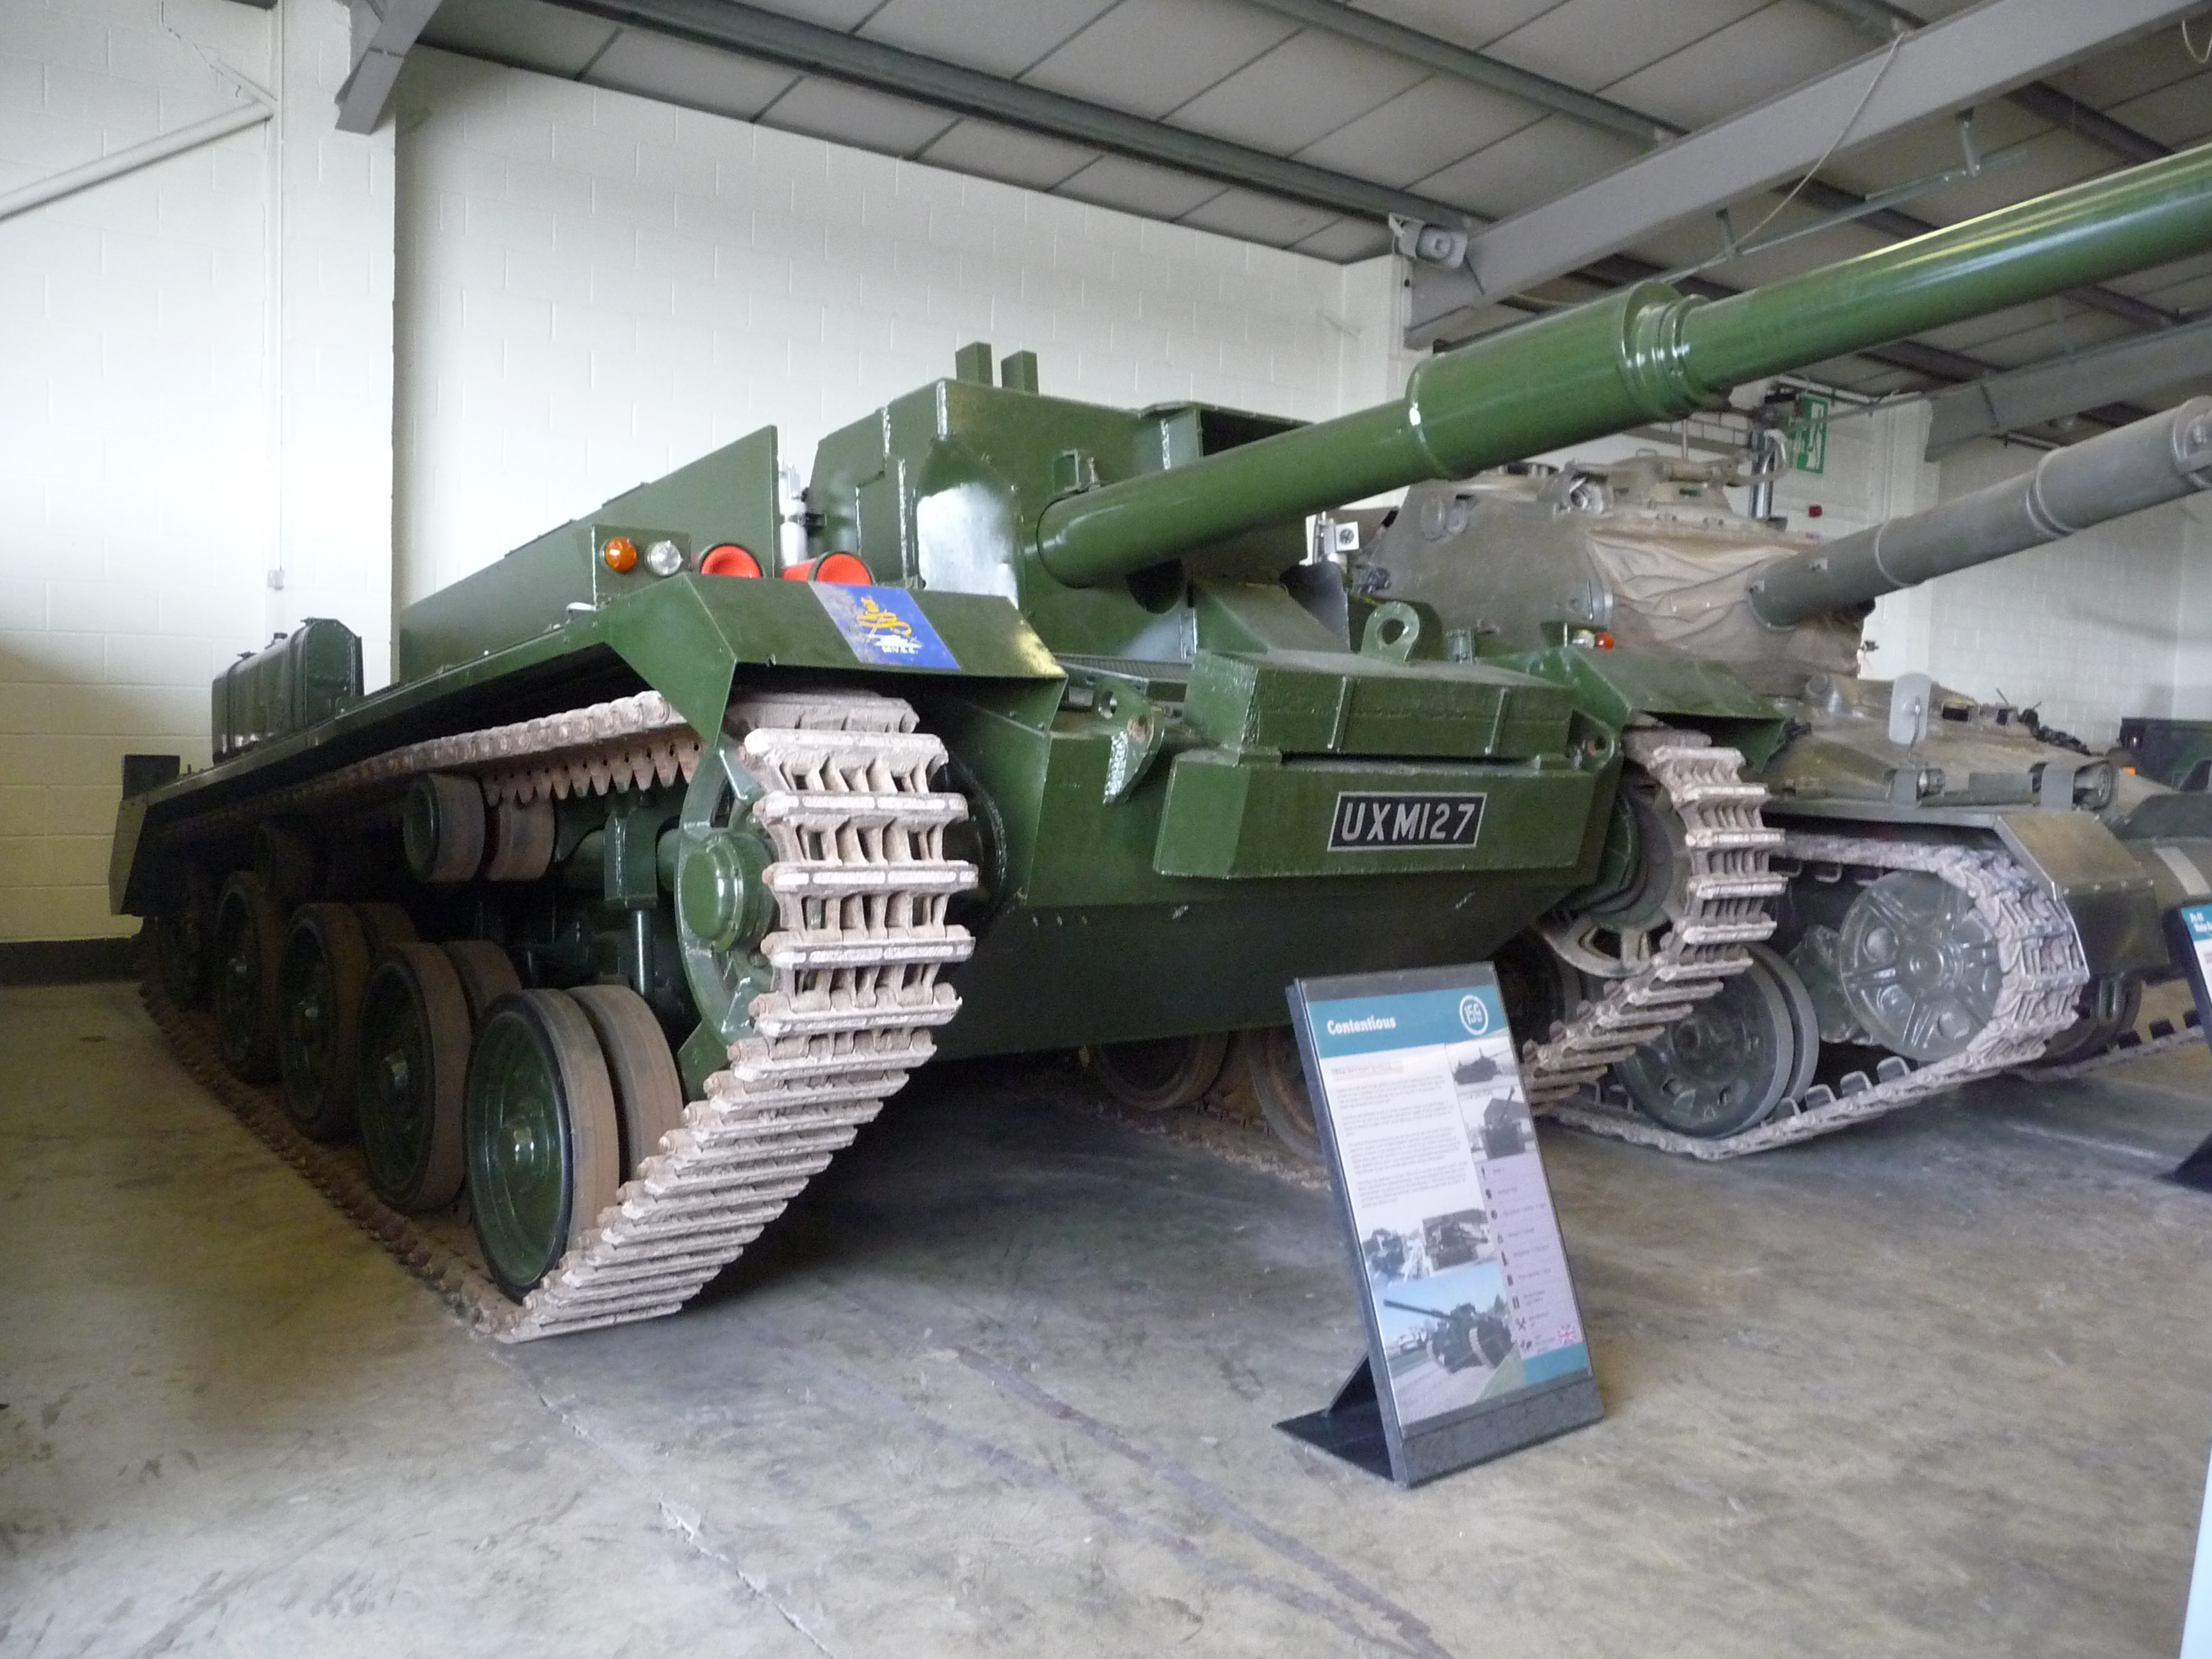 A 43 Wot fv4401 contentious - wikipedia